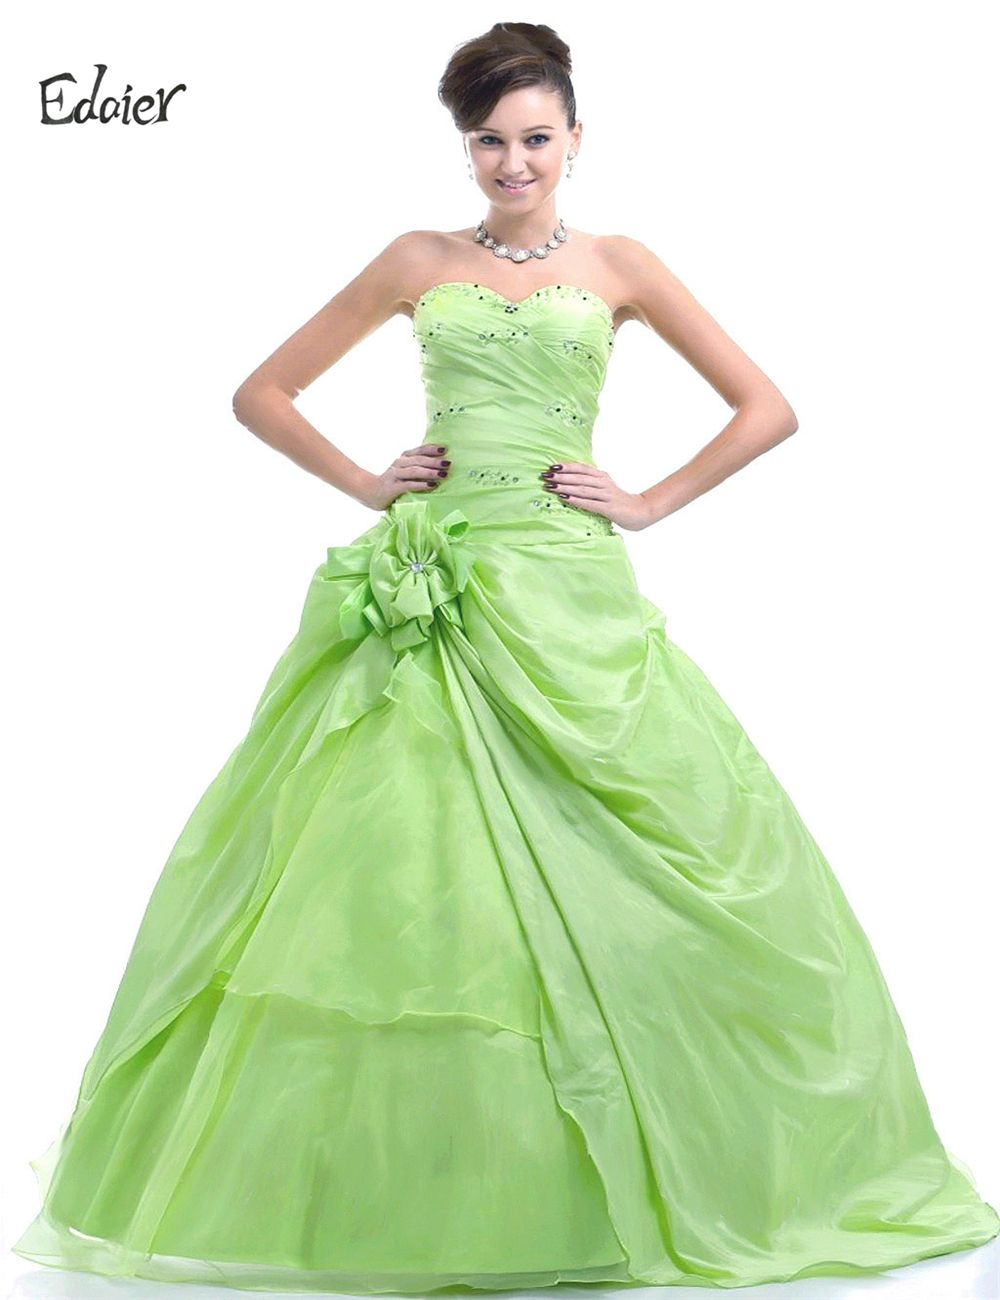 Click to buy edaier 2017 long lemon green prom dresses ball click to buy edaier 2017 long lemon green prom dresses ball gowns ombrellifo Choice Image